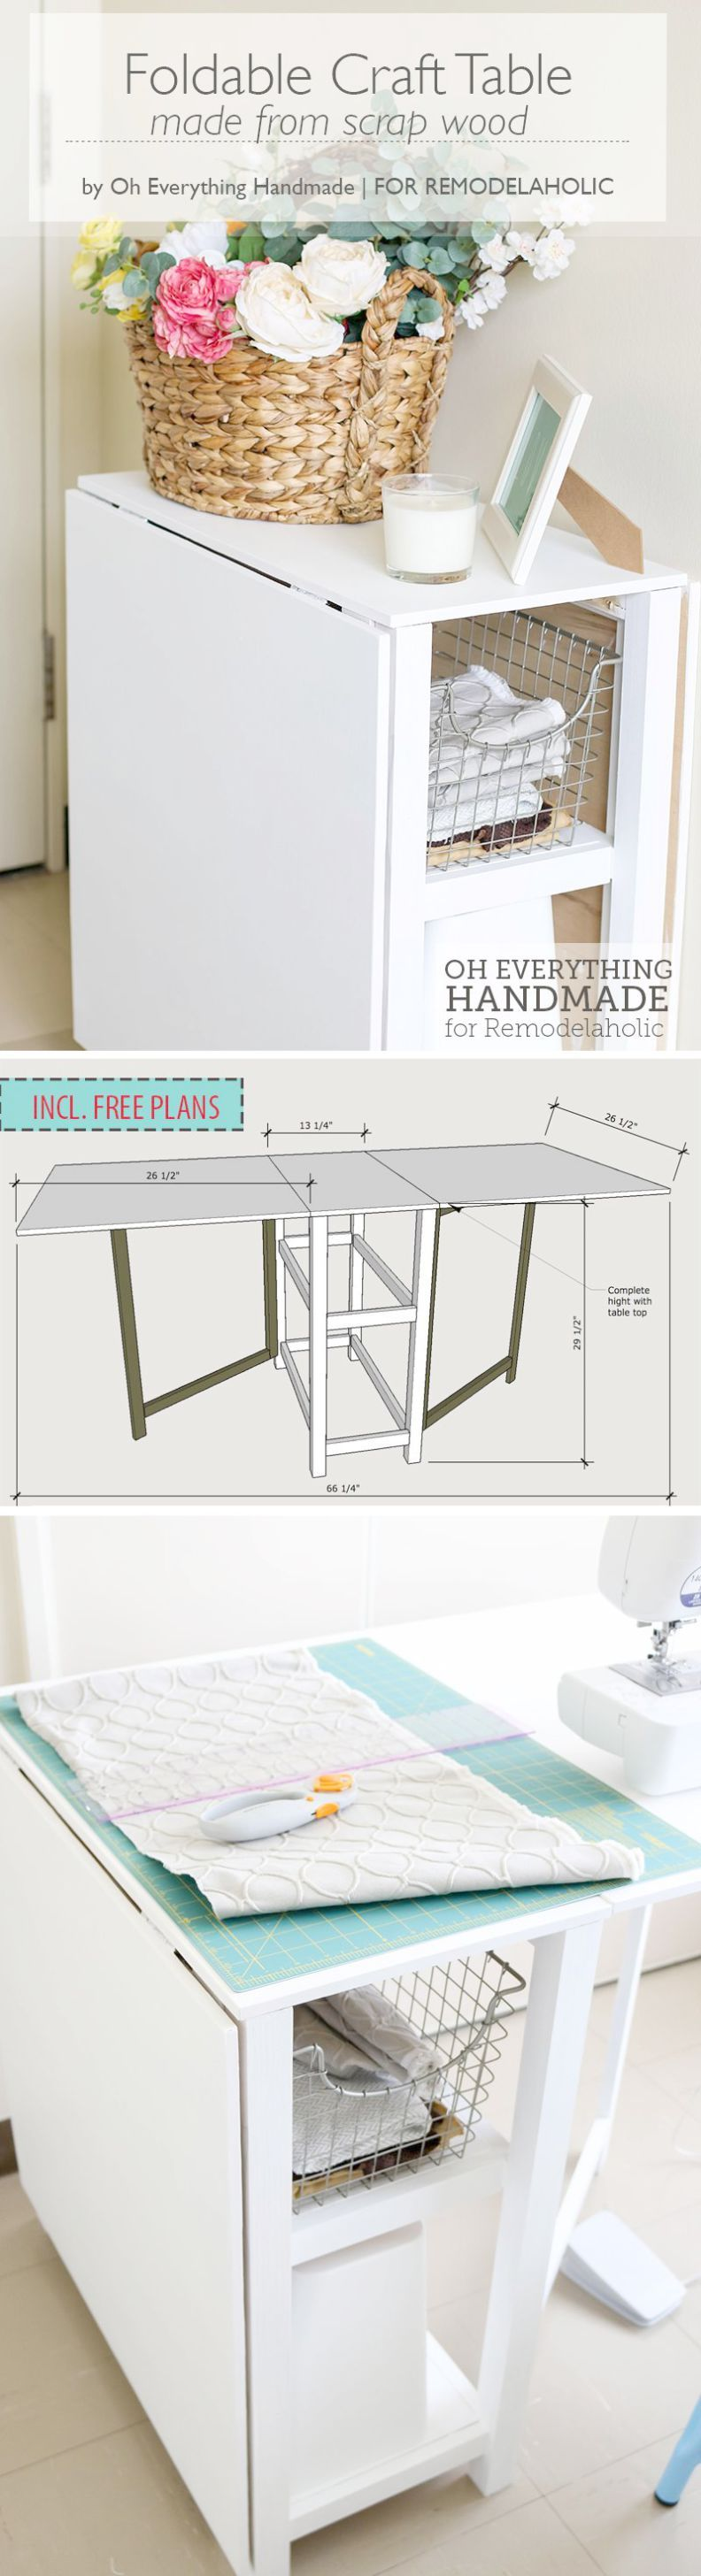 Crafting And Building Craft Rather Crafting Organizer As Osrs Ironman Crafting Guide Reddit Except Crafting Diy Sewing Table Room Organization Diy Sewing Table